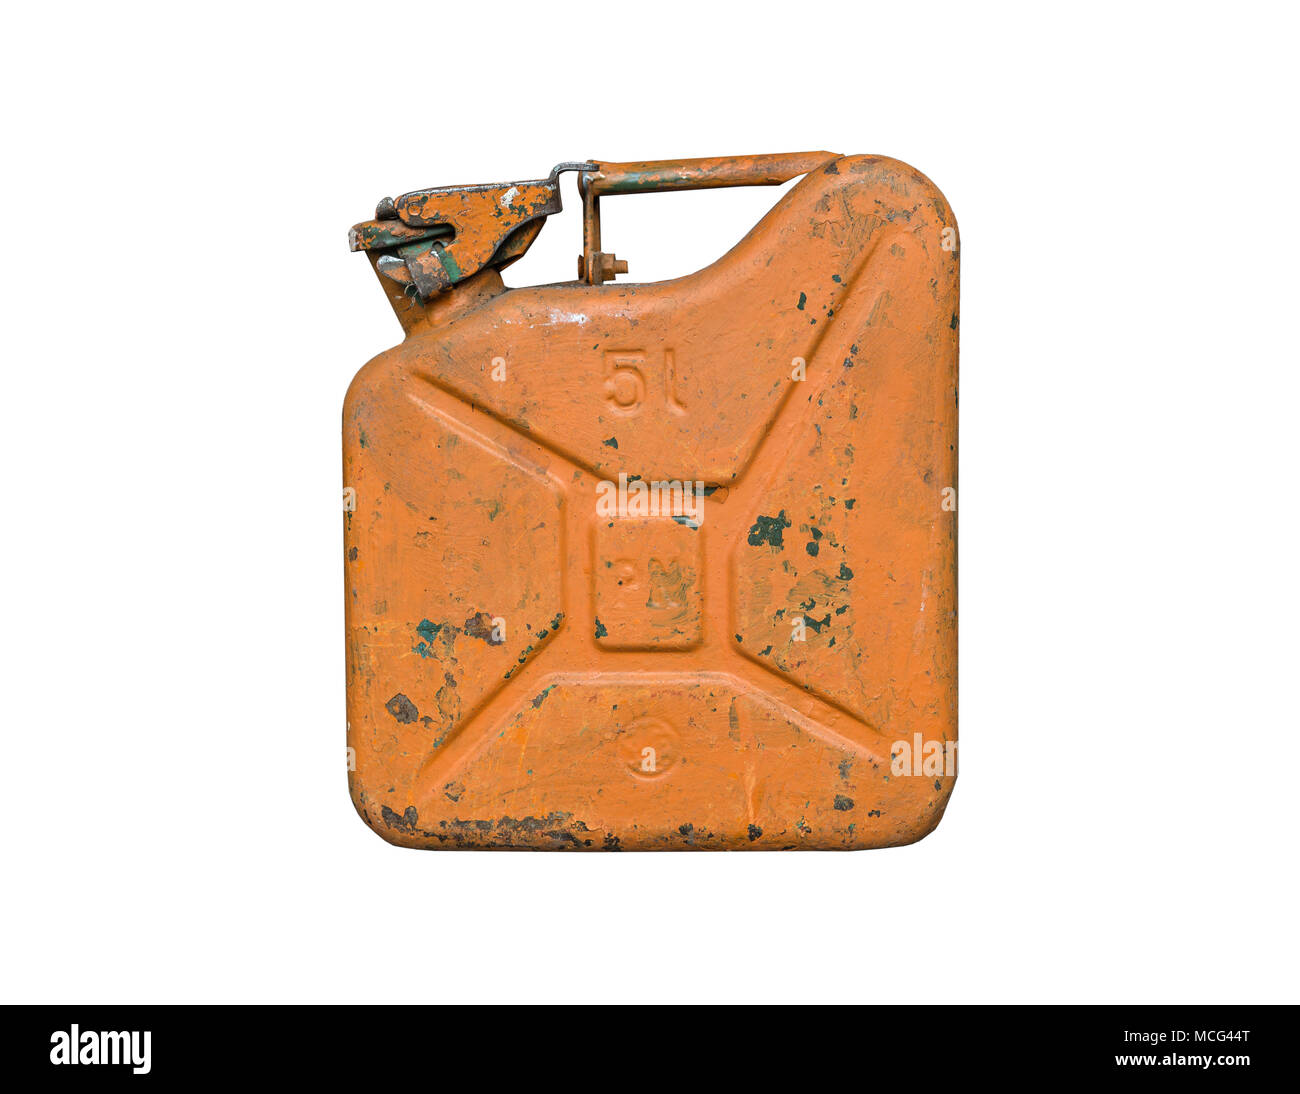 Old orange metal fuel tank for transporting and storing petrol. Isolated  on a white background - Stock Image